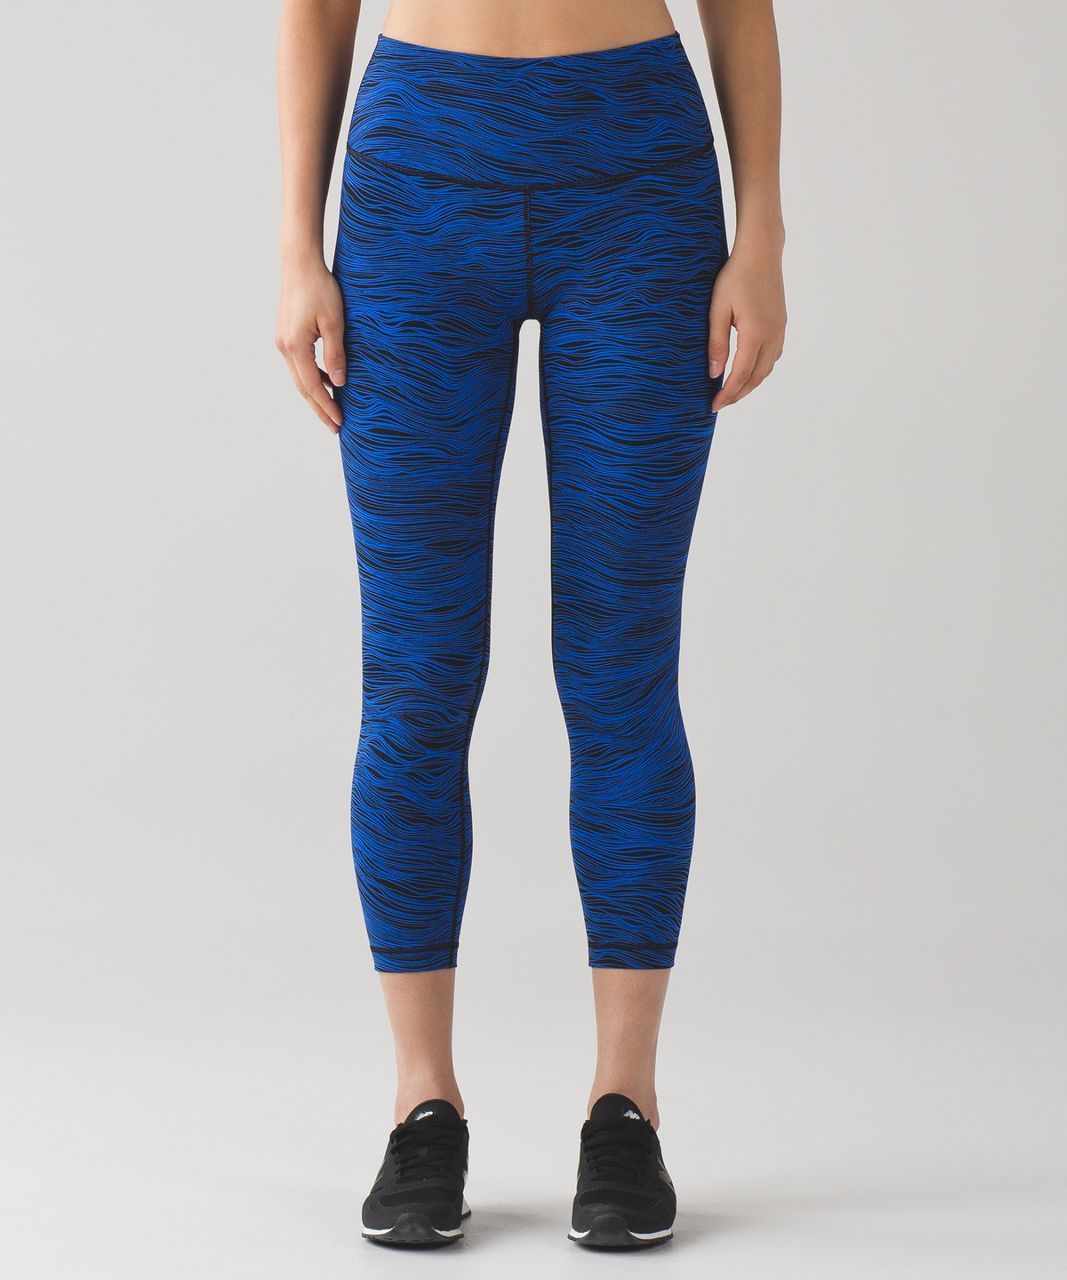 Lululemon High Times Pant (Full-On Luxtreme) - Life Lines Cerulean Blue Black